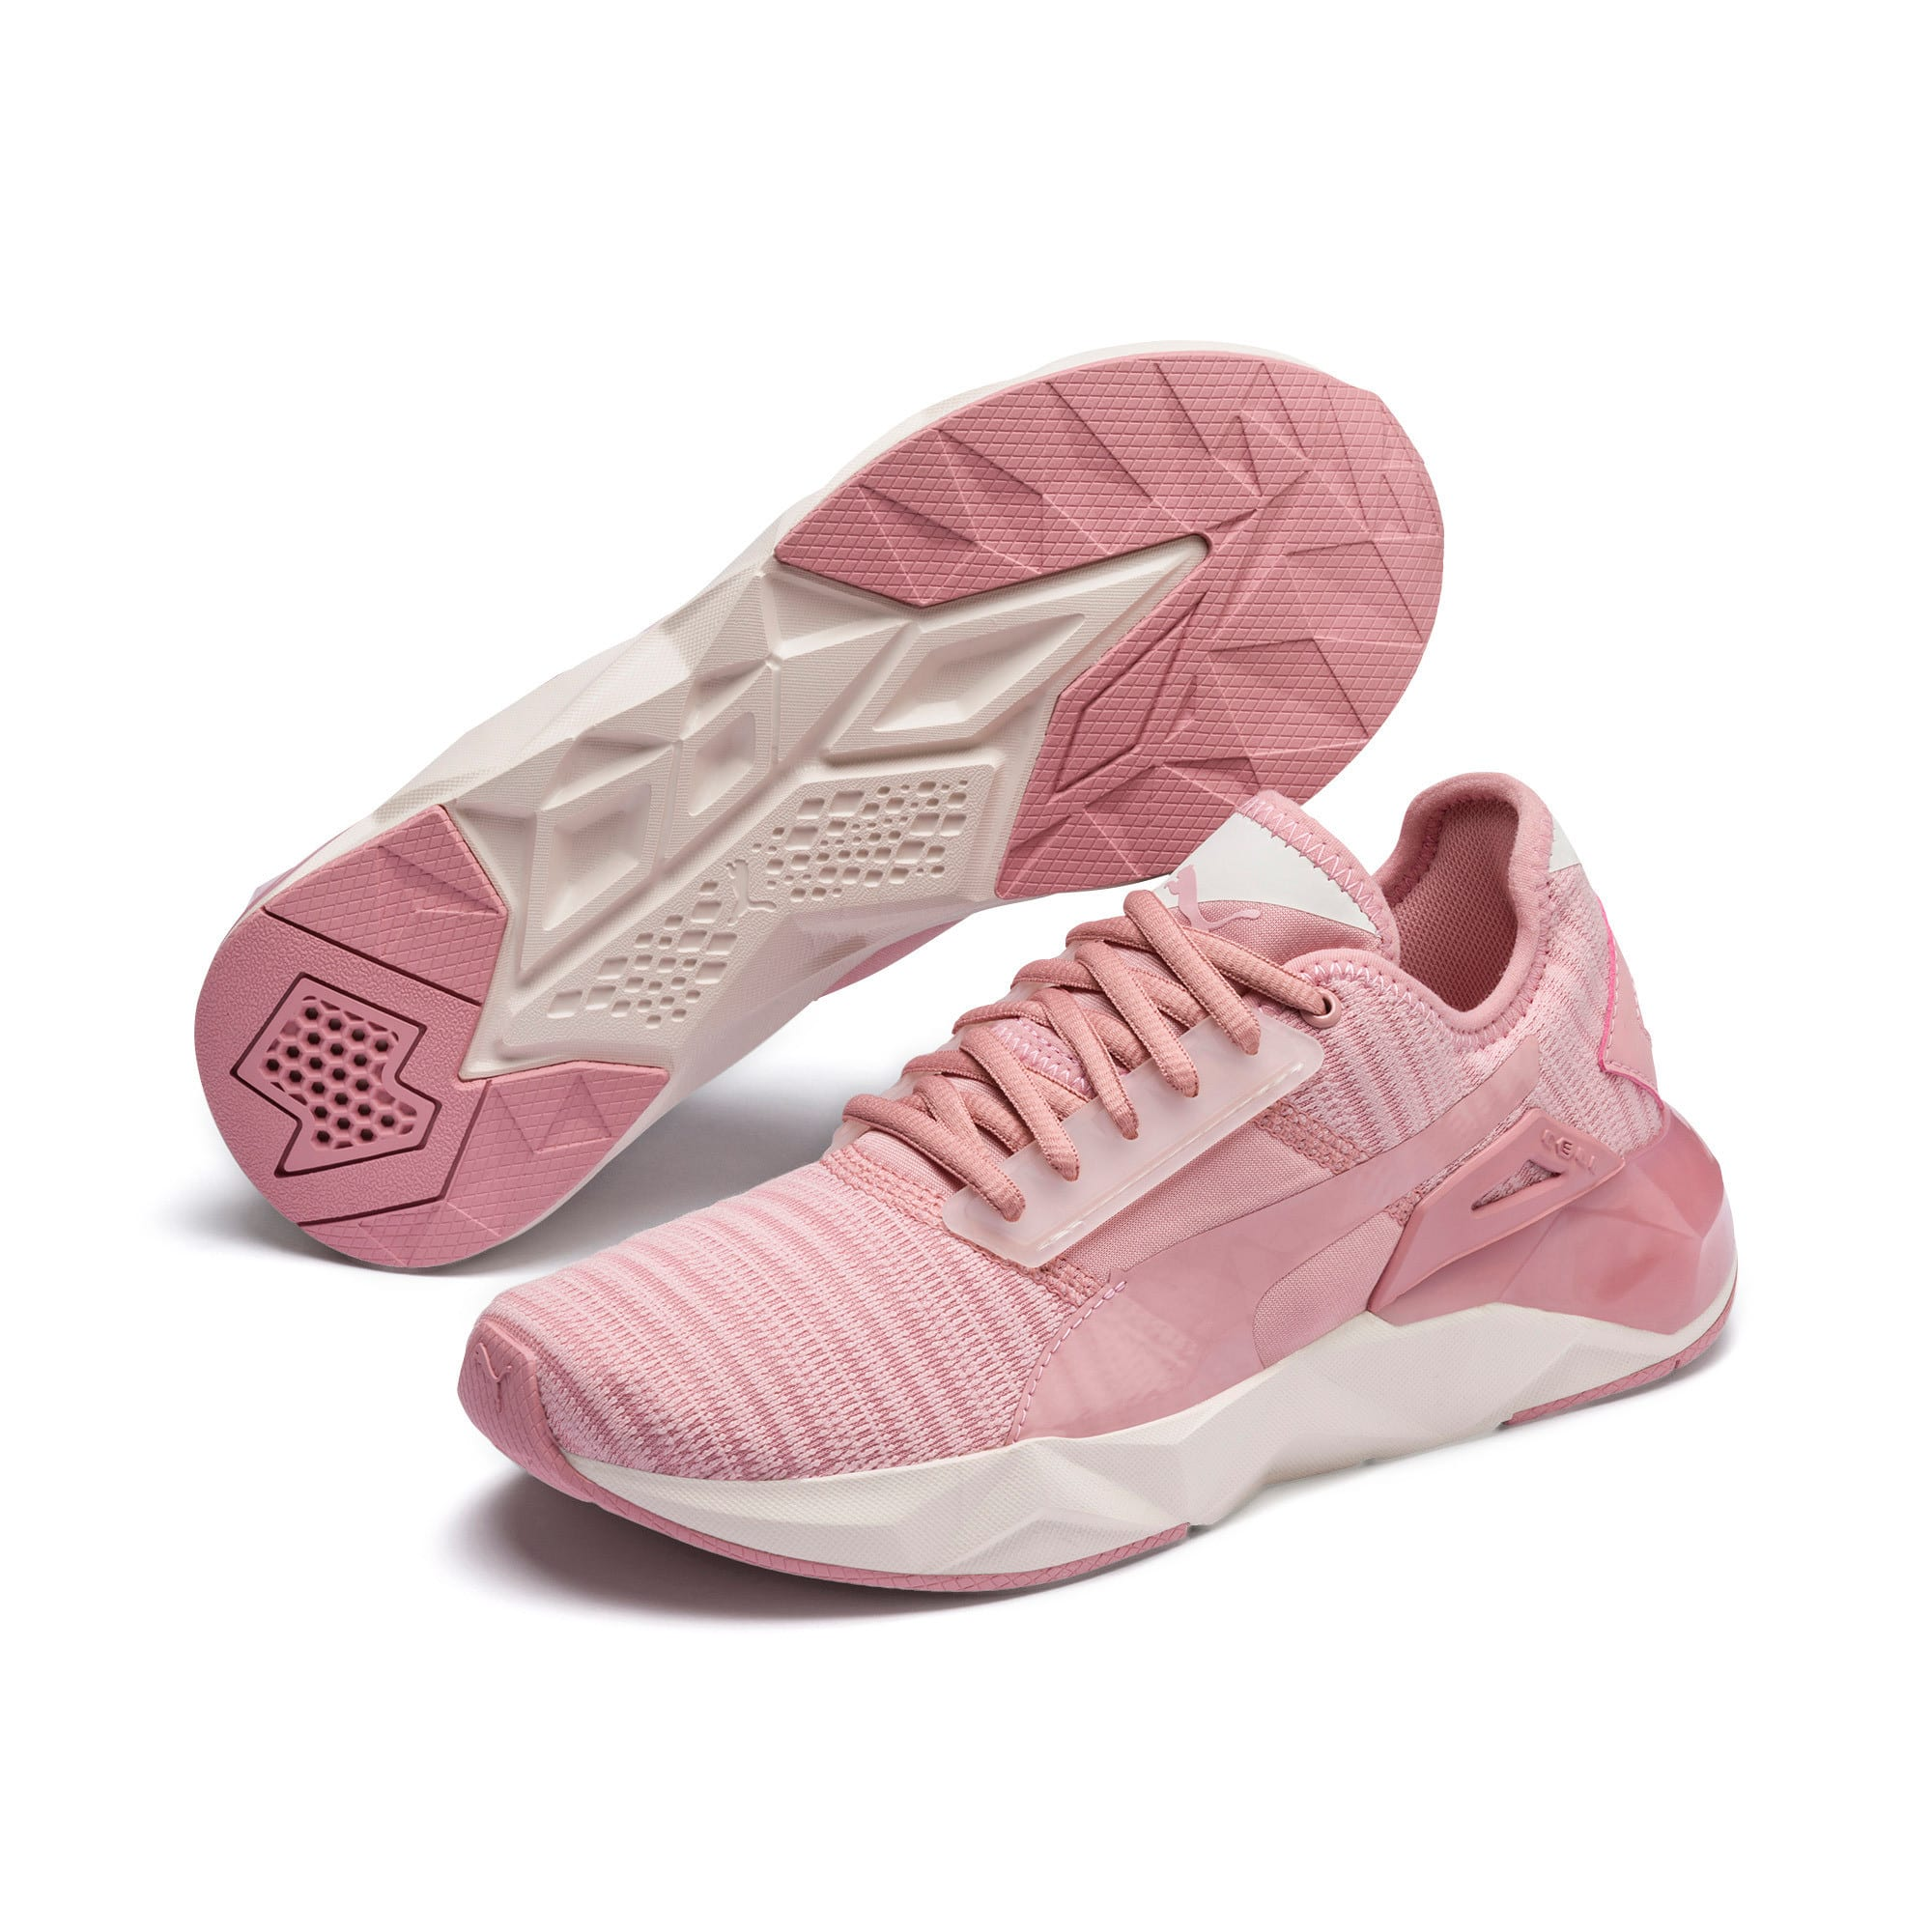 Thumbnail 4 of CELL Plasmic Women's Trainers, Bridal Rose-Pastel Parchment, medium-IND